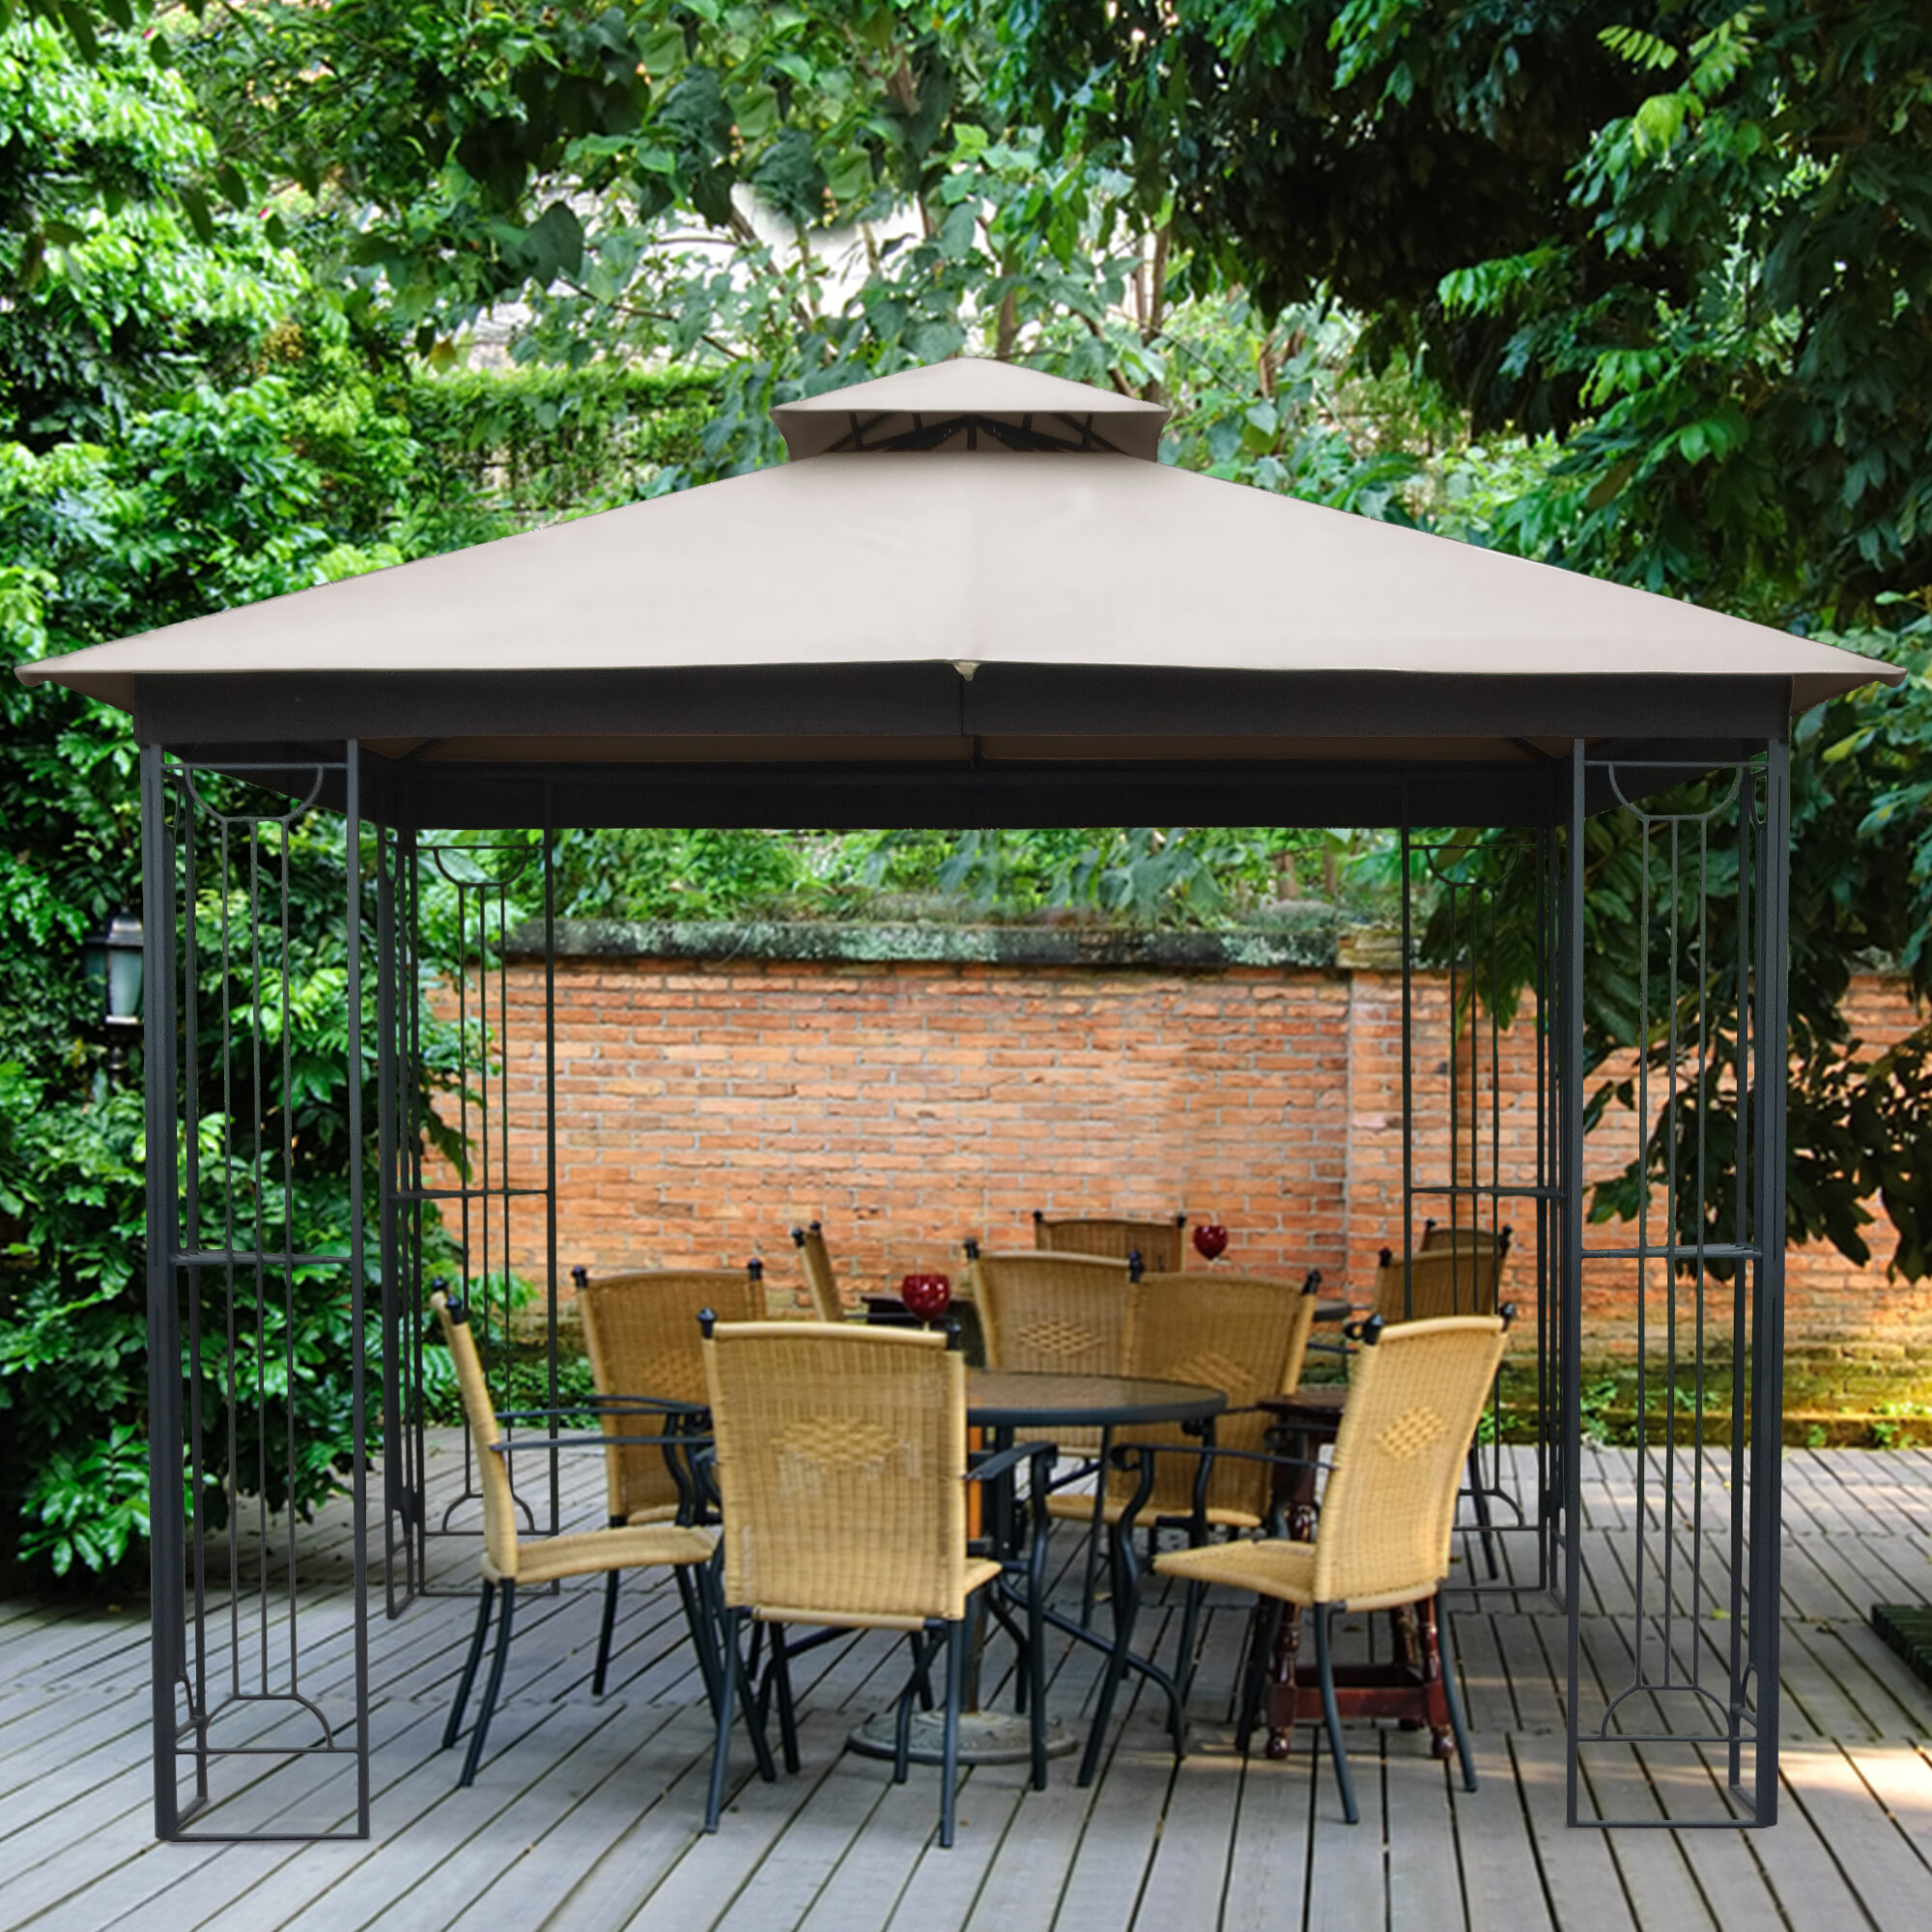 Arlmont Co Foote Soft Top 10 Ft W X 10 Ft D Steel Patio Gazebo Reviews Wayfair